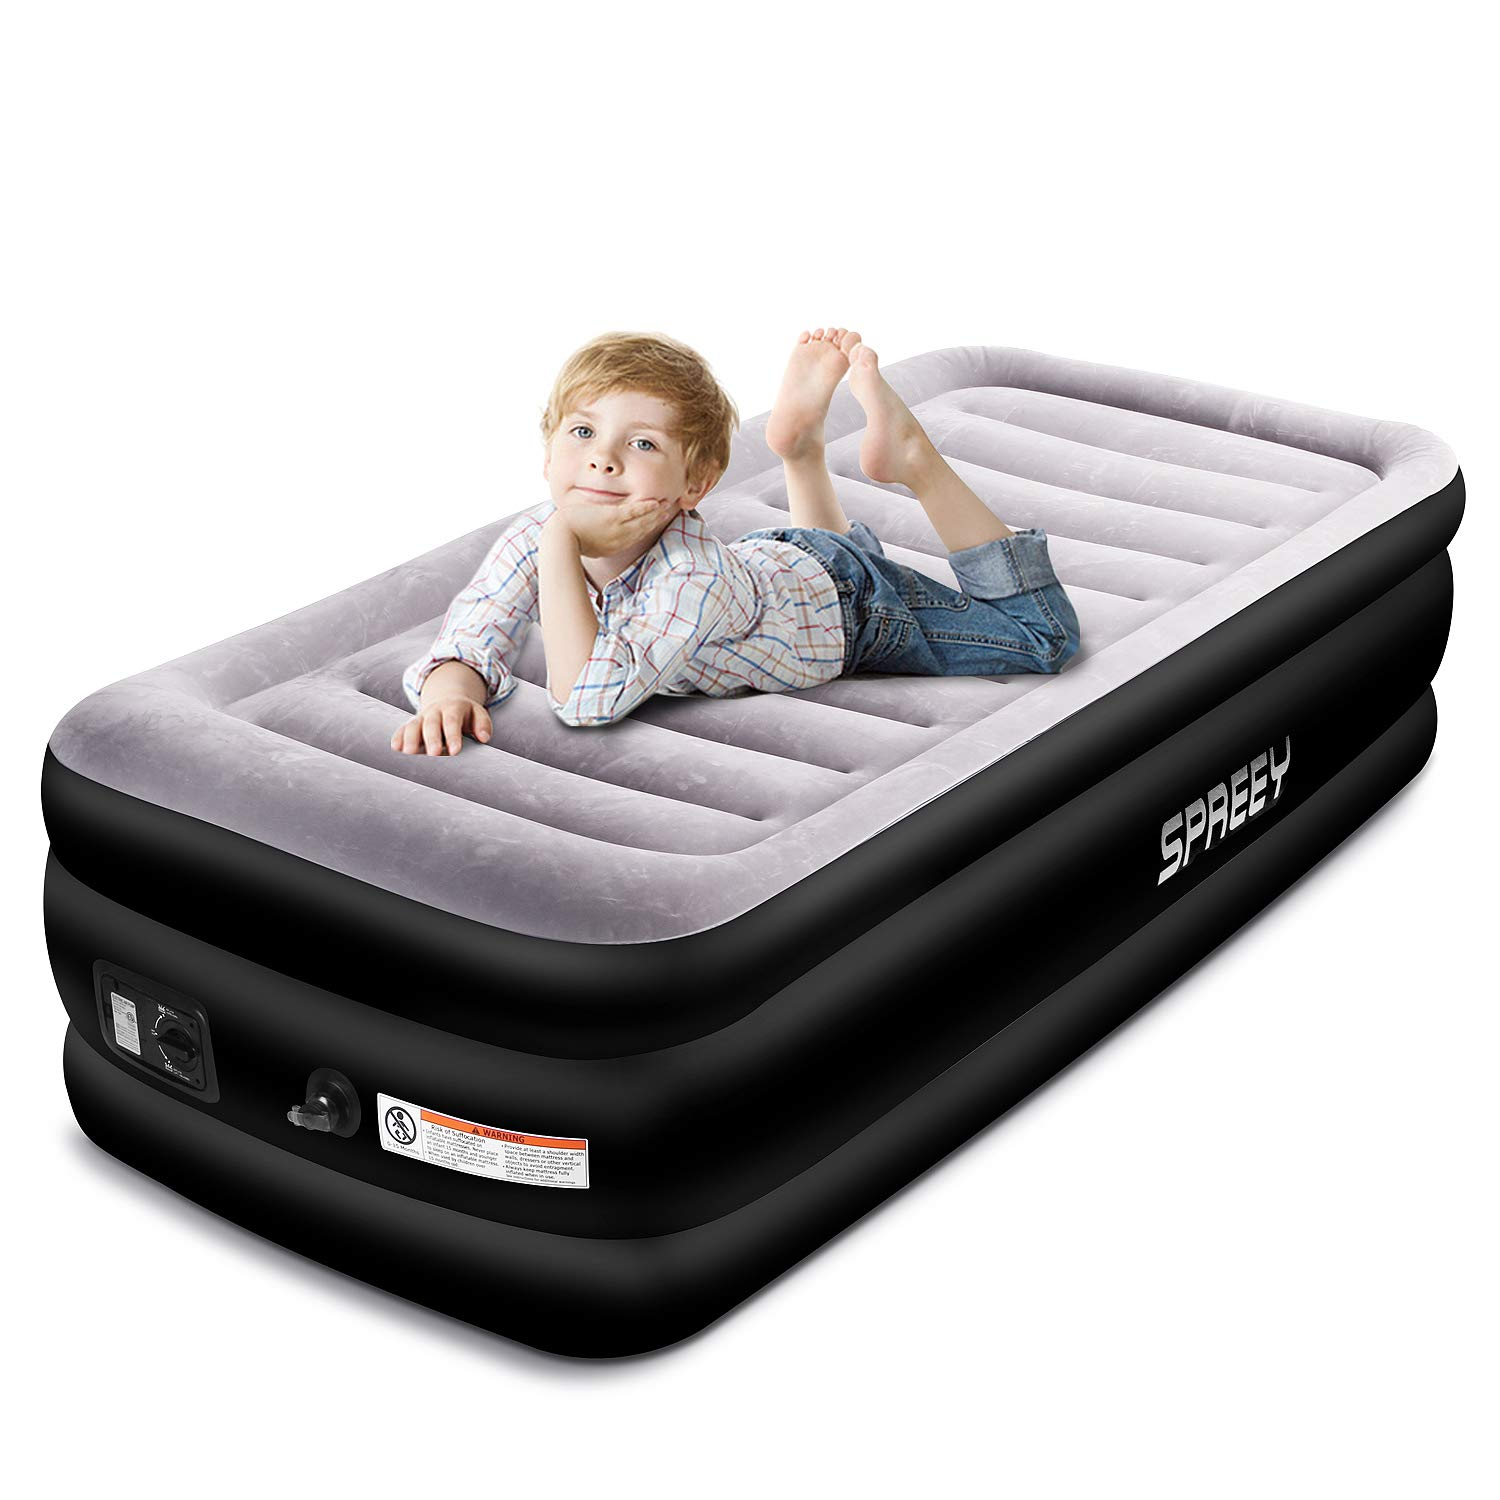 SPREEY Air Mattress Air Bed with Comfort Coil Technology & Built-in Electric Pump, Twin Inflatable Mattress Bed Soft Flocking Layer Comfortable and Portable Equipped Fashion Storage Bag (Black Twin)